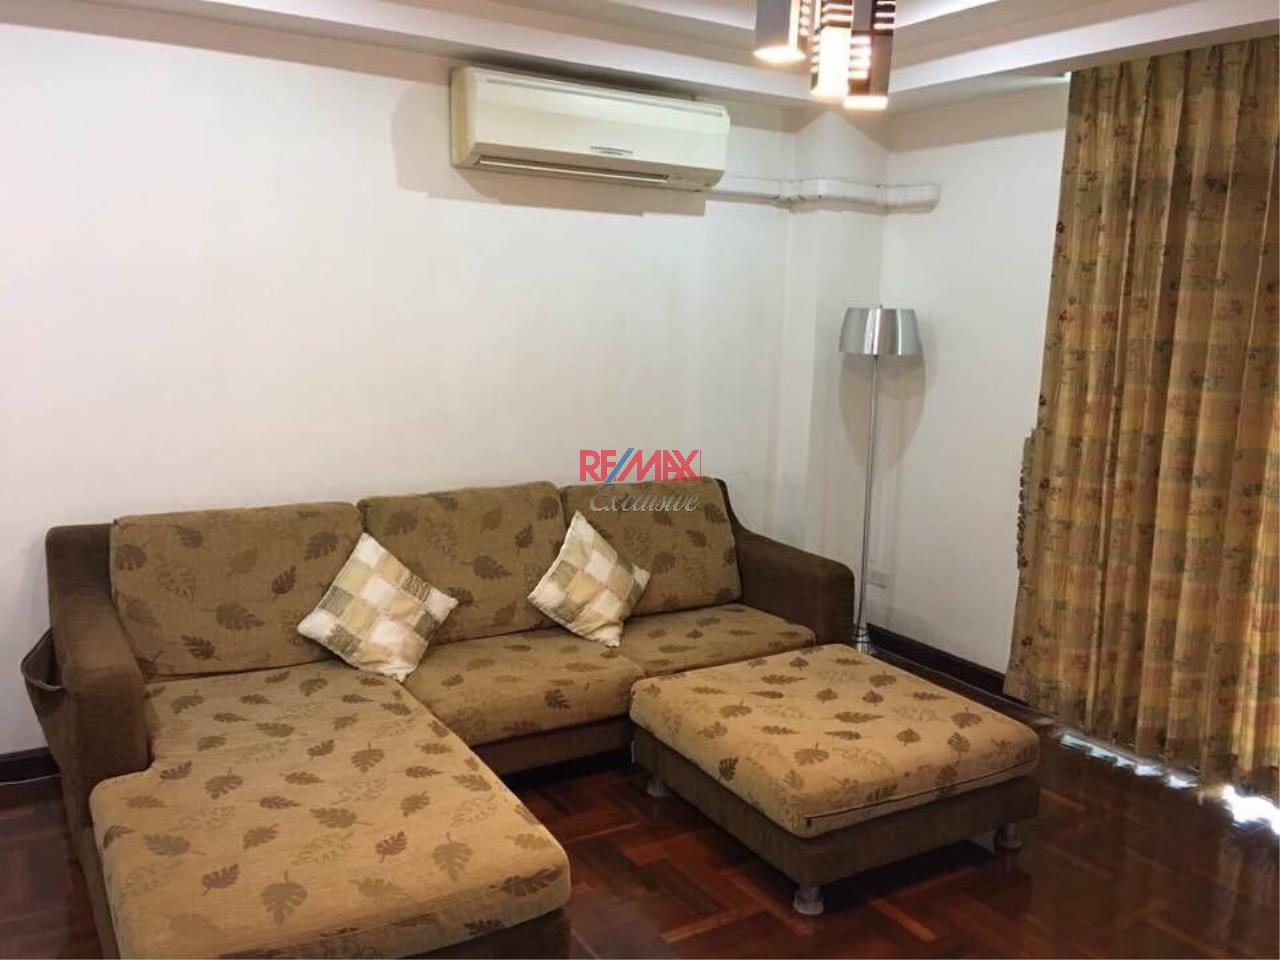 RE/MAX Exclusive Agency's Spacious 2 BR for rent near BTS Onnut, Sukhumvit 50. 7